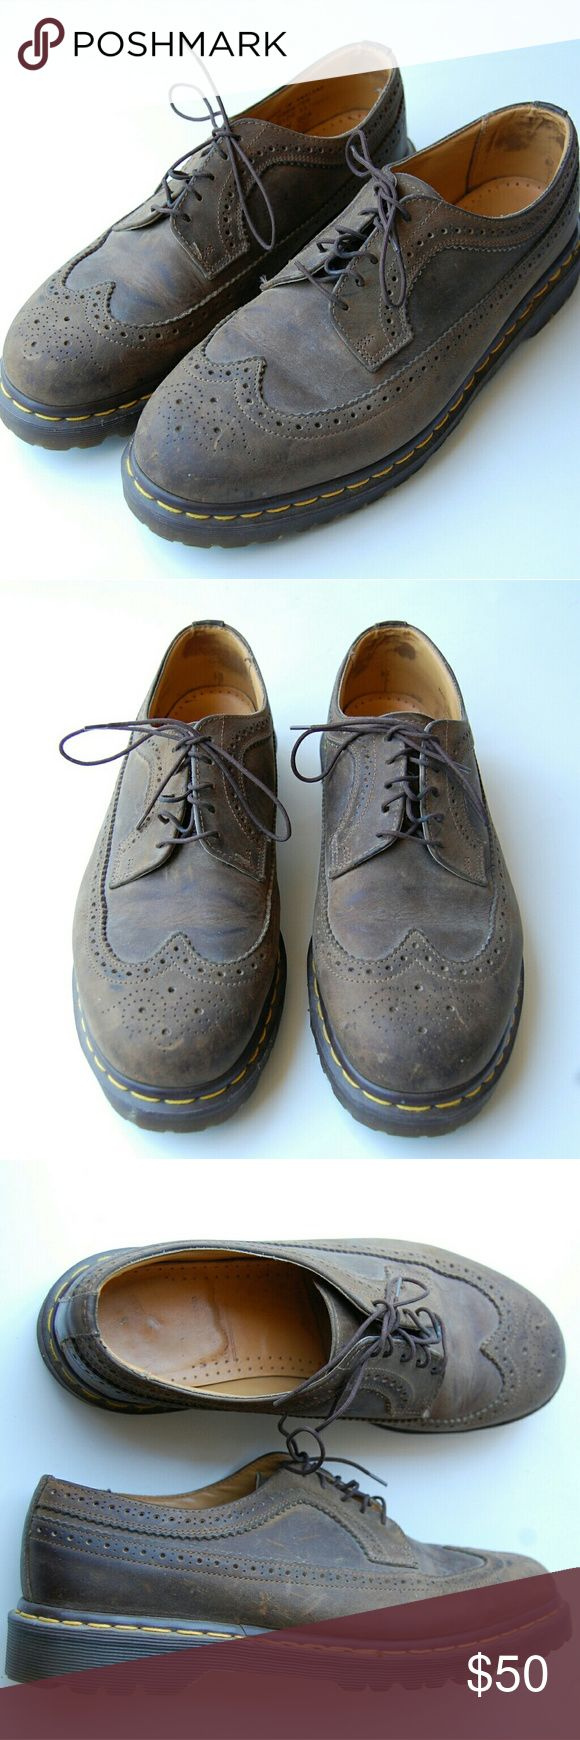 "Dr Martens Men's Oxford  US 12 UK 11/ US 12 Great Condition! Oxford Loafers  Free item when you purchase shoes! Any listing in my closet with ""🌻"" in the title is included! Just pick one and it will be included! 💙💚 Dr. Martens Shoes"